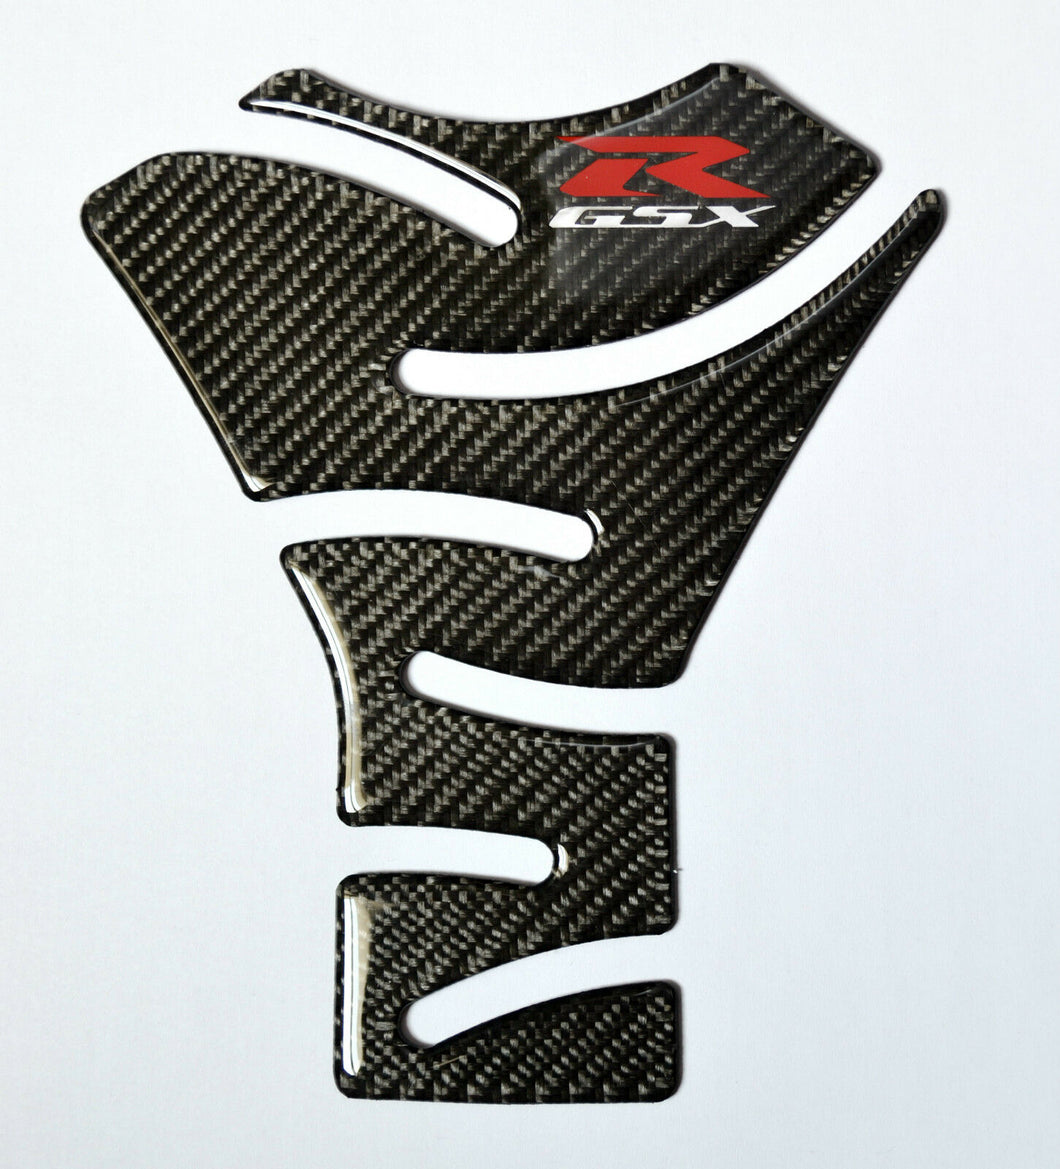 Authentic Carbon Fiber Tank Protector Pad Sticker fits Suzuki GSX-R GSXR GSX R 600